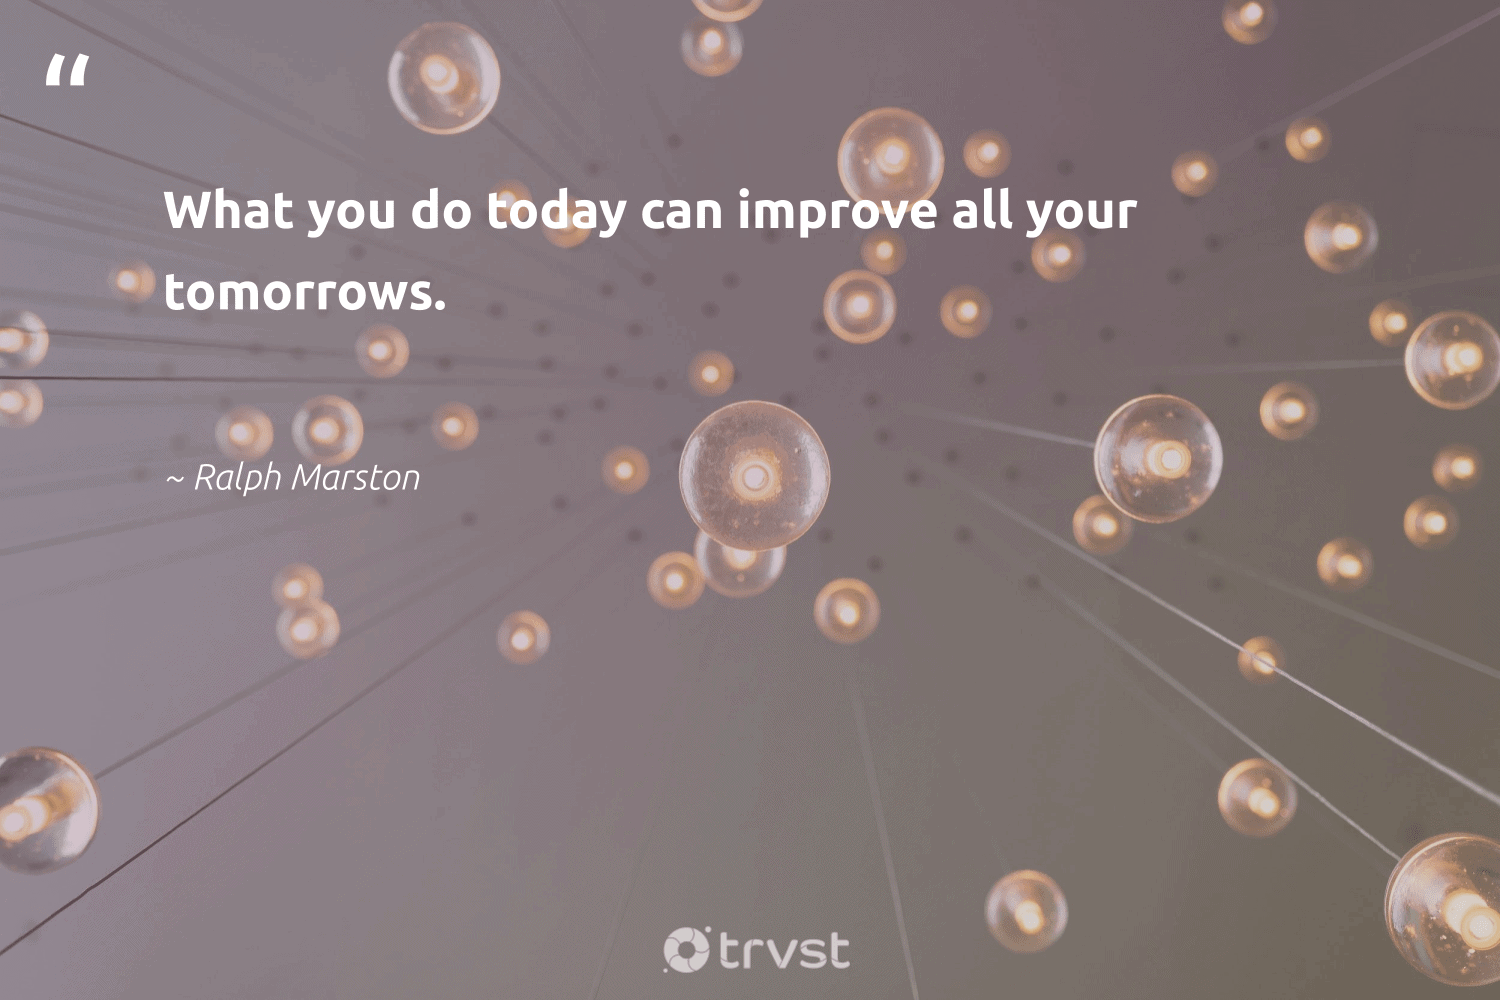 """""""What you do today can improve all your tomorrows.""""  - Ralph Marston #trvst #quotes #nevergiveup #planetearthfirst #futureofwork #bethechange #begreat #impact #softskills #dogood #socialchange #dosomething"""